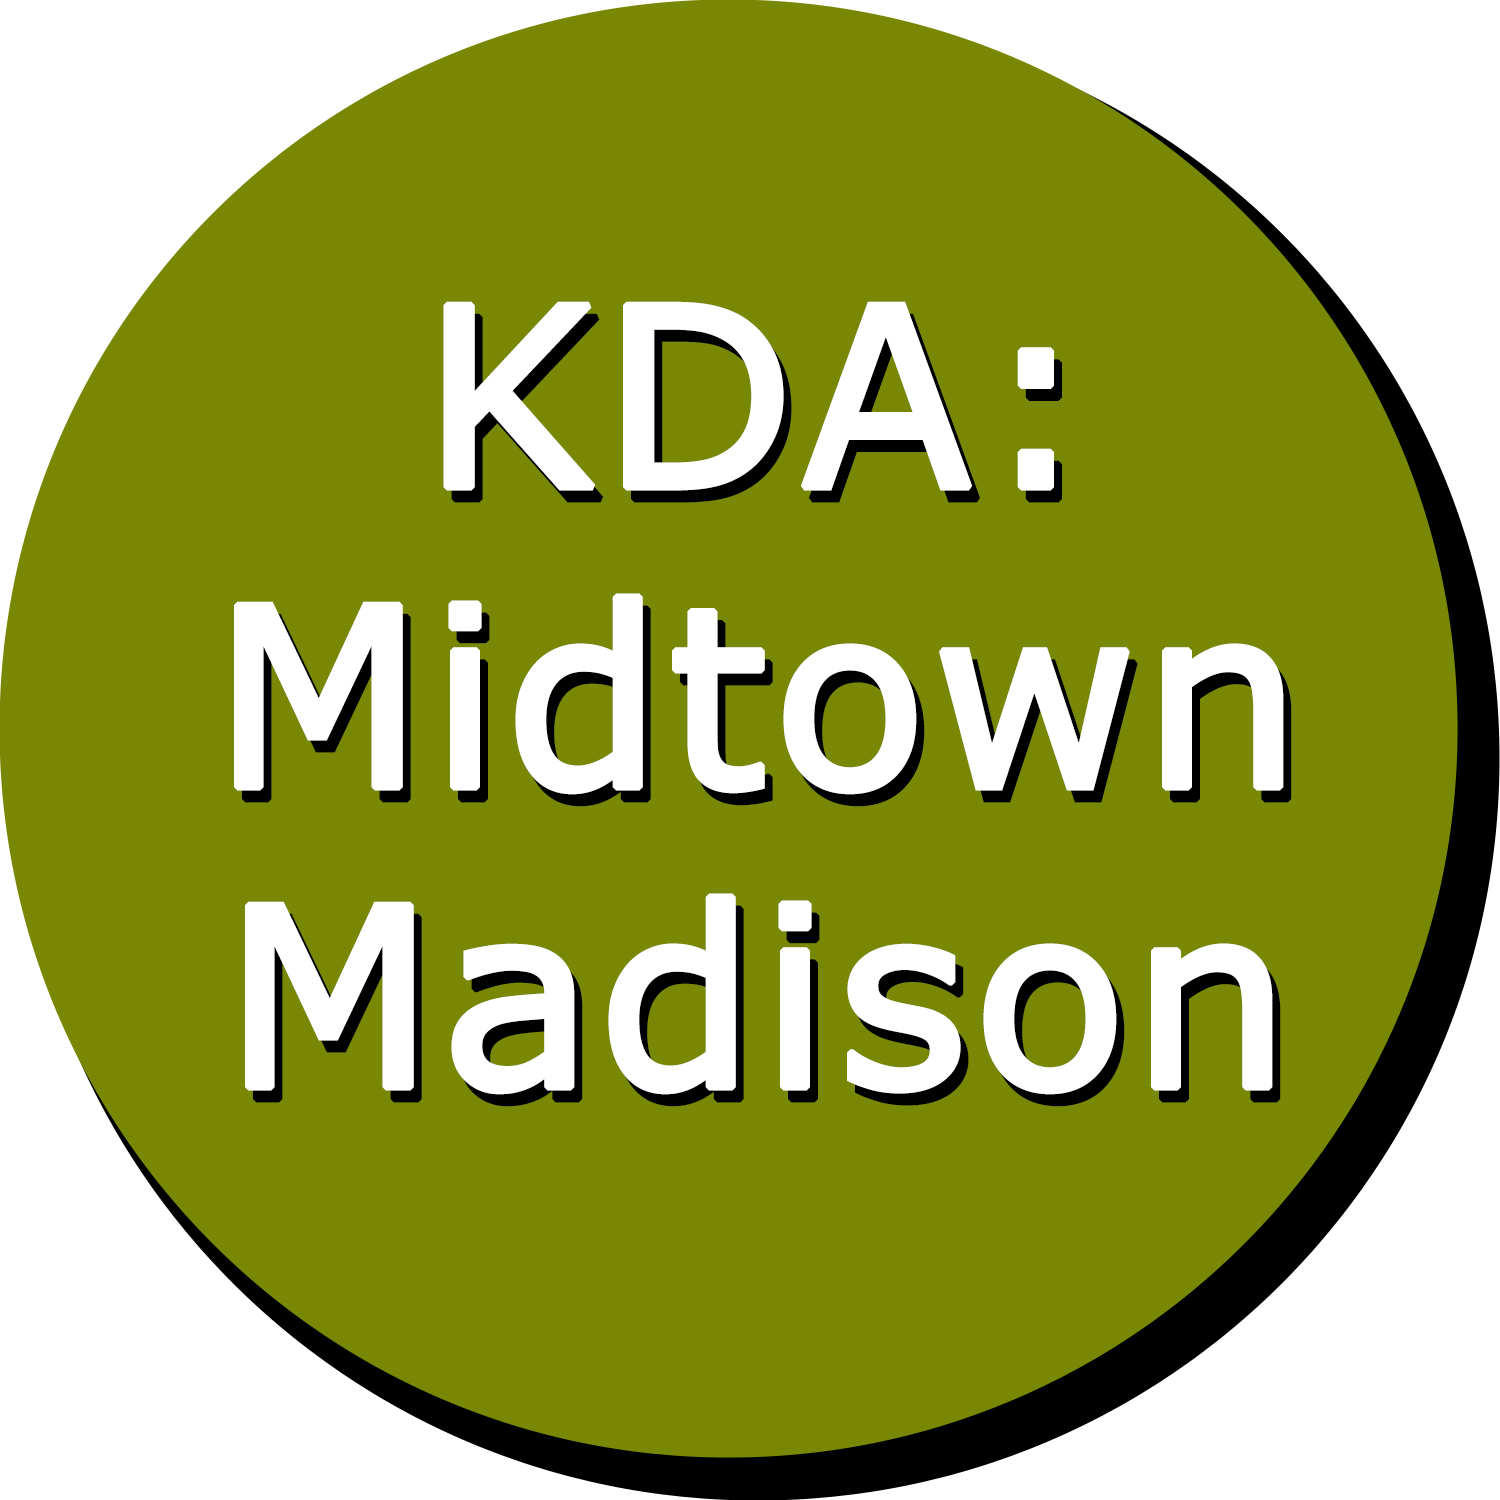 KDA: Midtown Madison Button